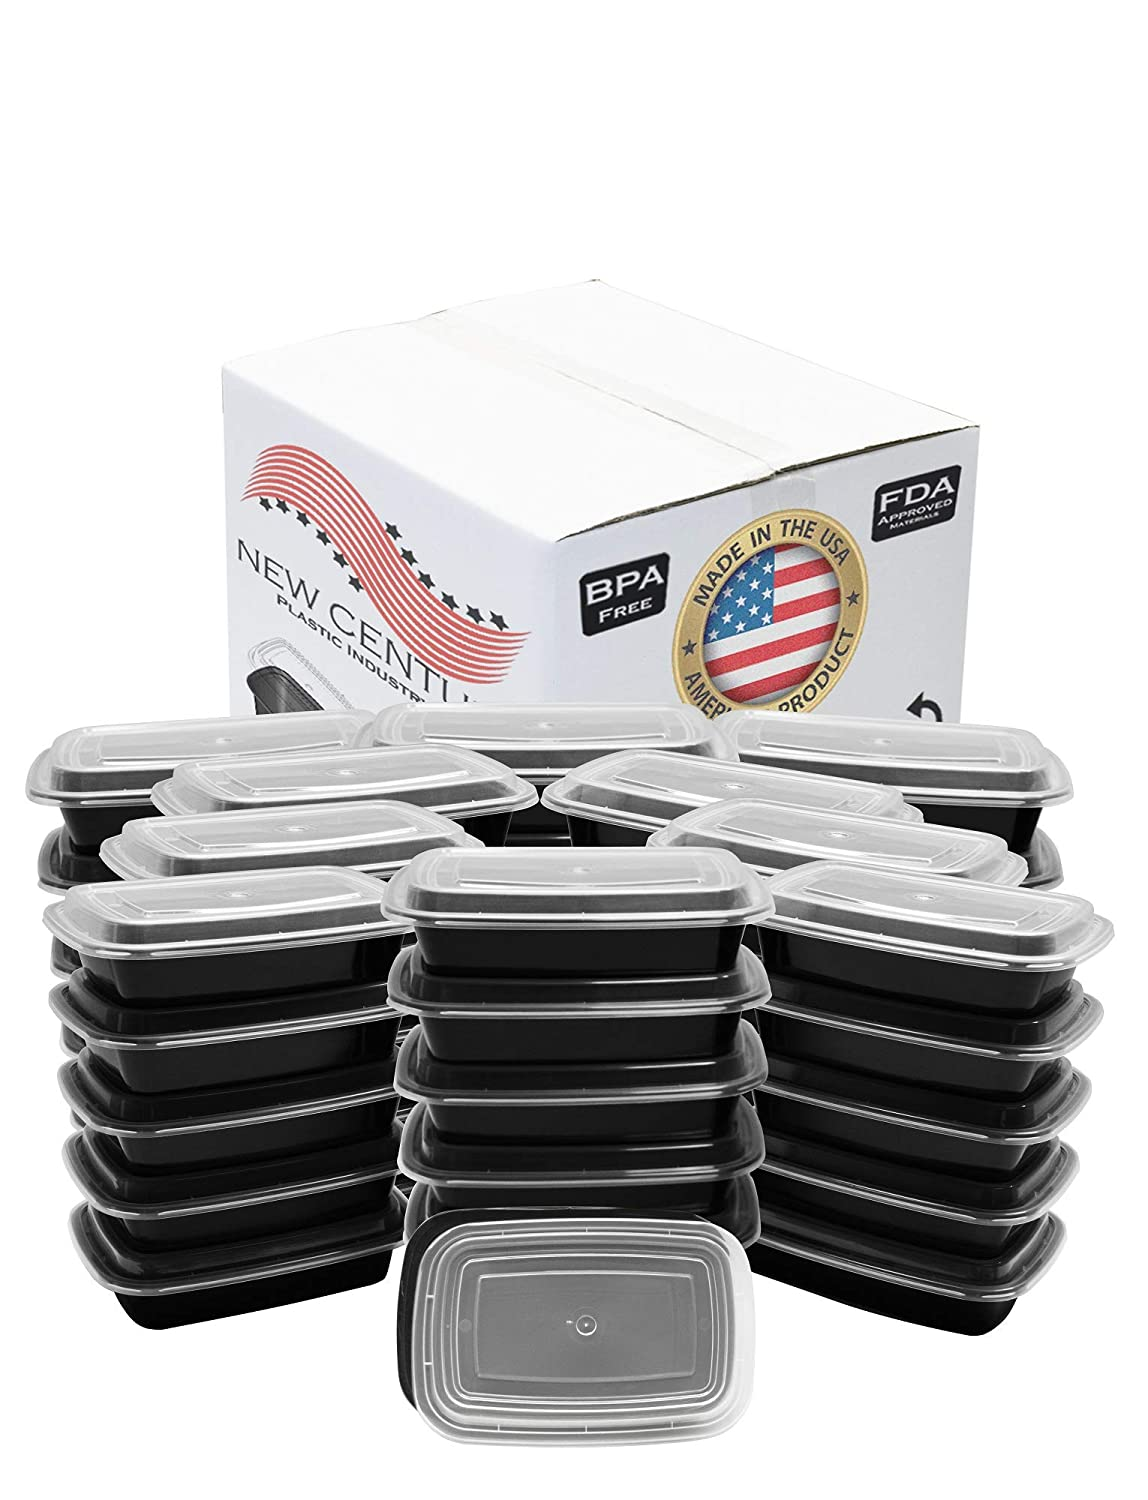 50-Pack [32 oz] 1-Compartment Food Container - Rectangular Meal Prep Bento with Lid - Portable Lunch Box - Stackable - BPA Free - Freezer/Microwave/Dishwasher Safe - Reusable Storage - USA Made